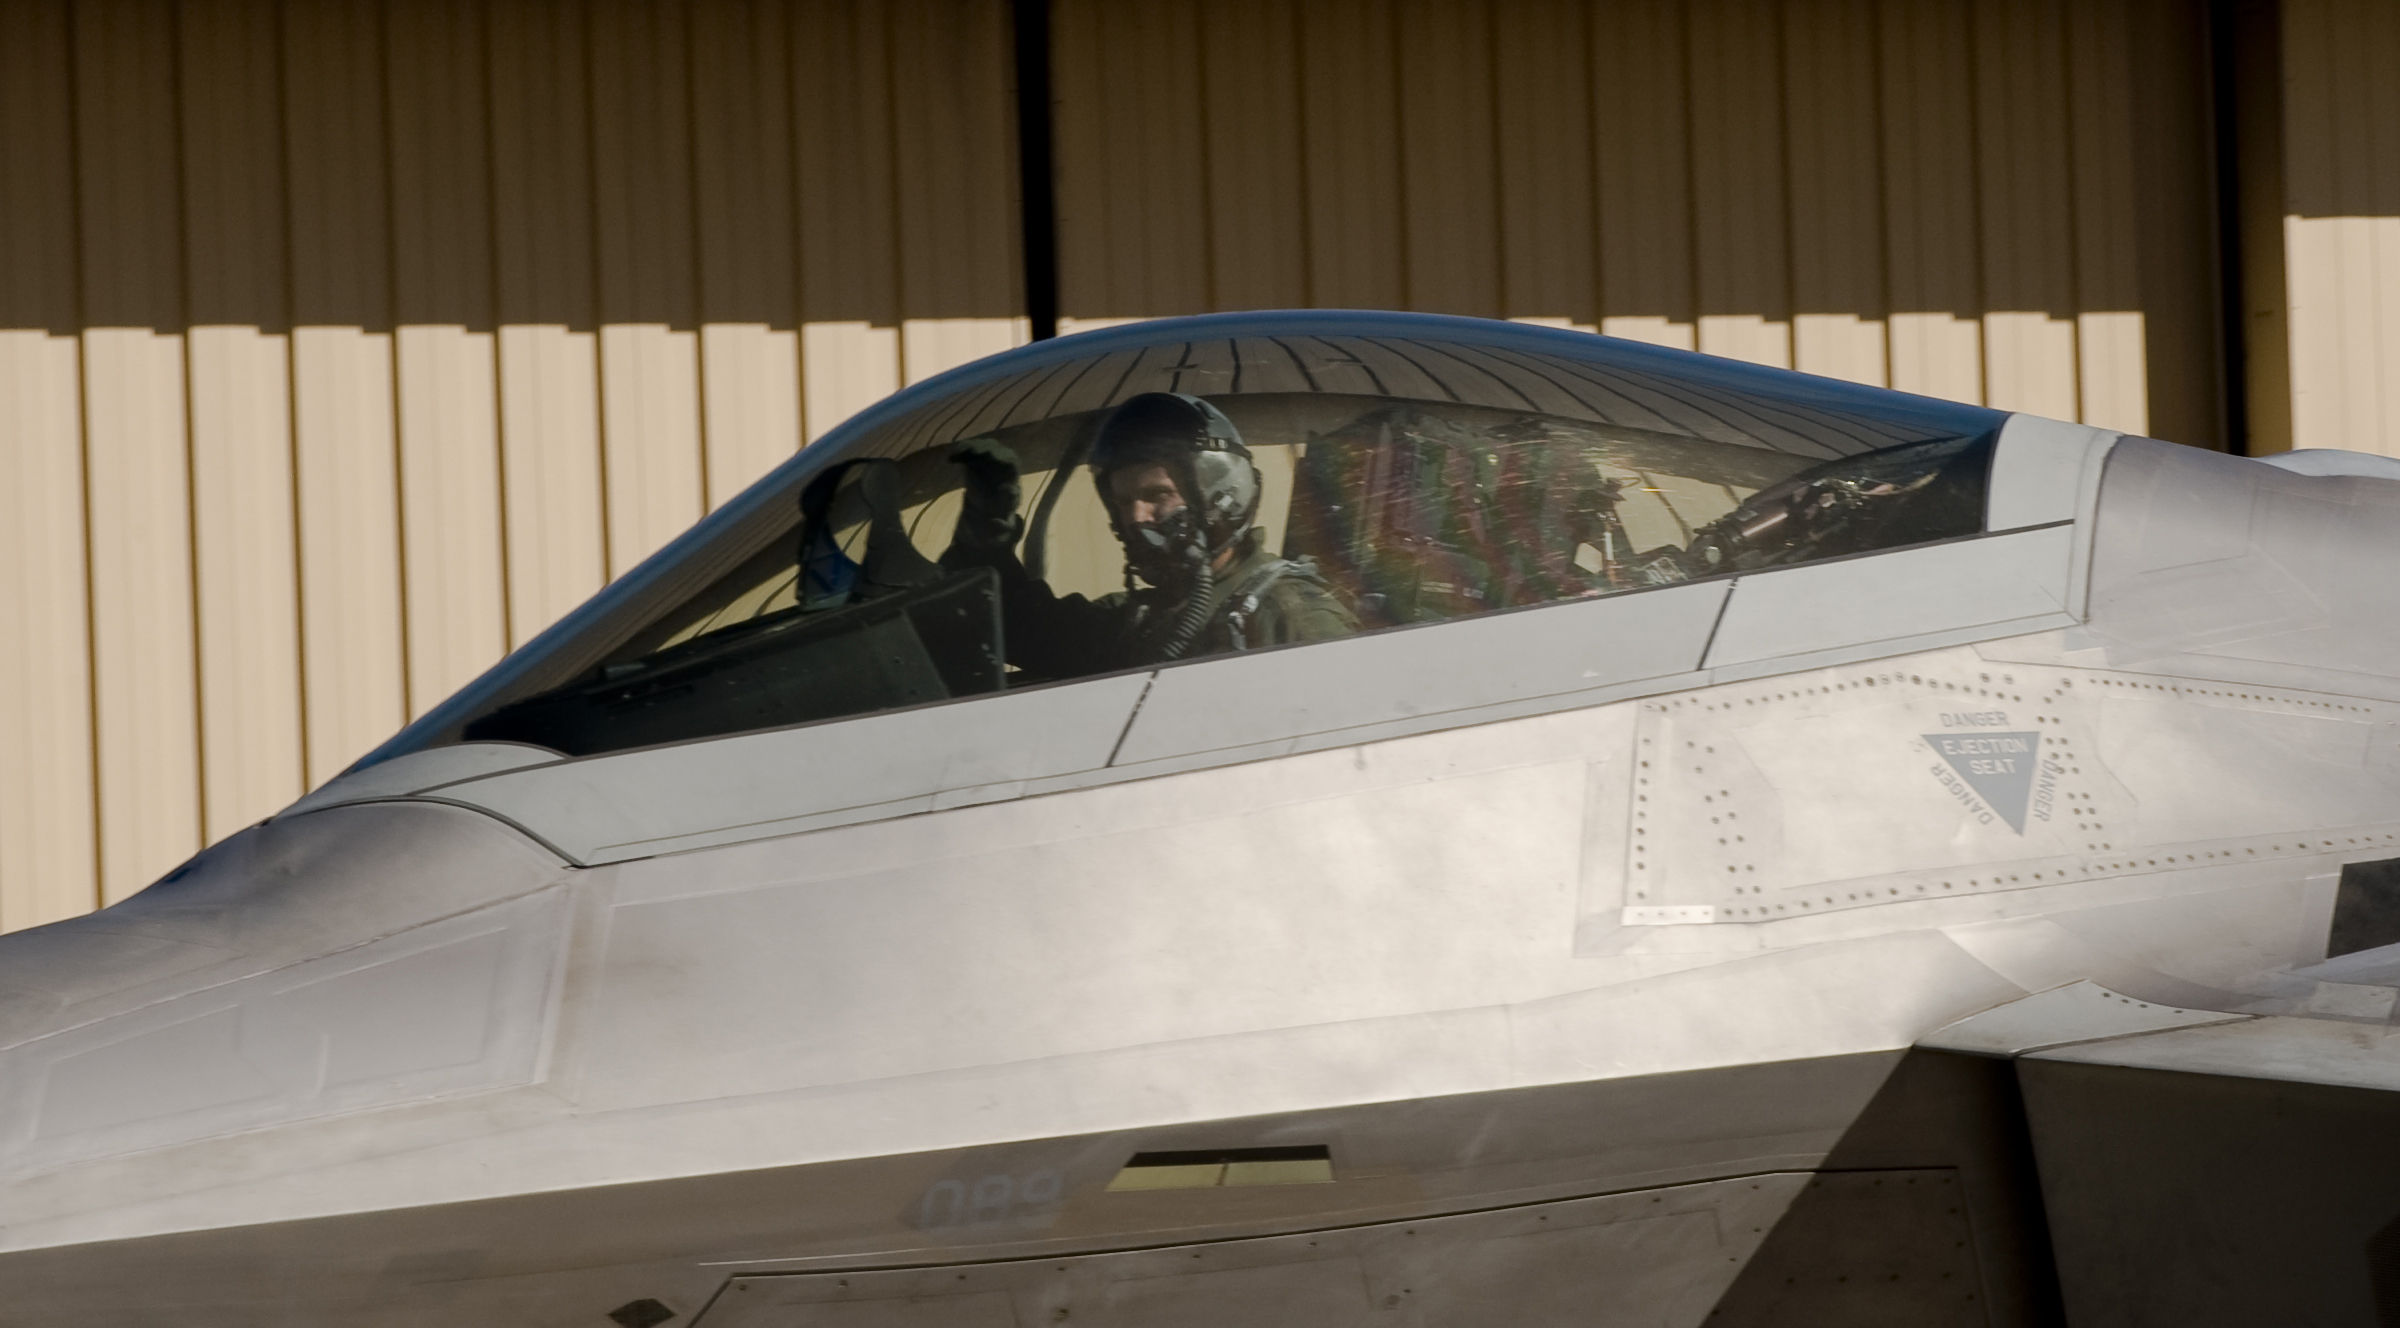 Air Force colonel beats cancer, soars high